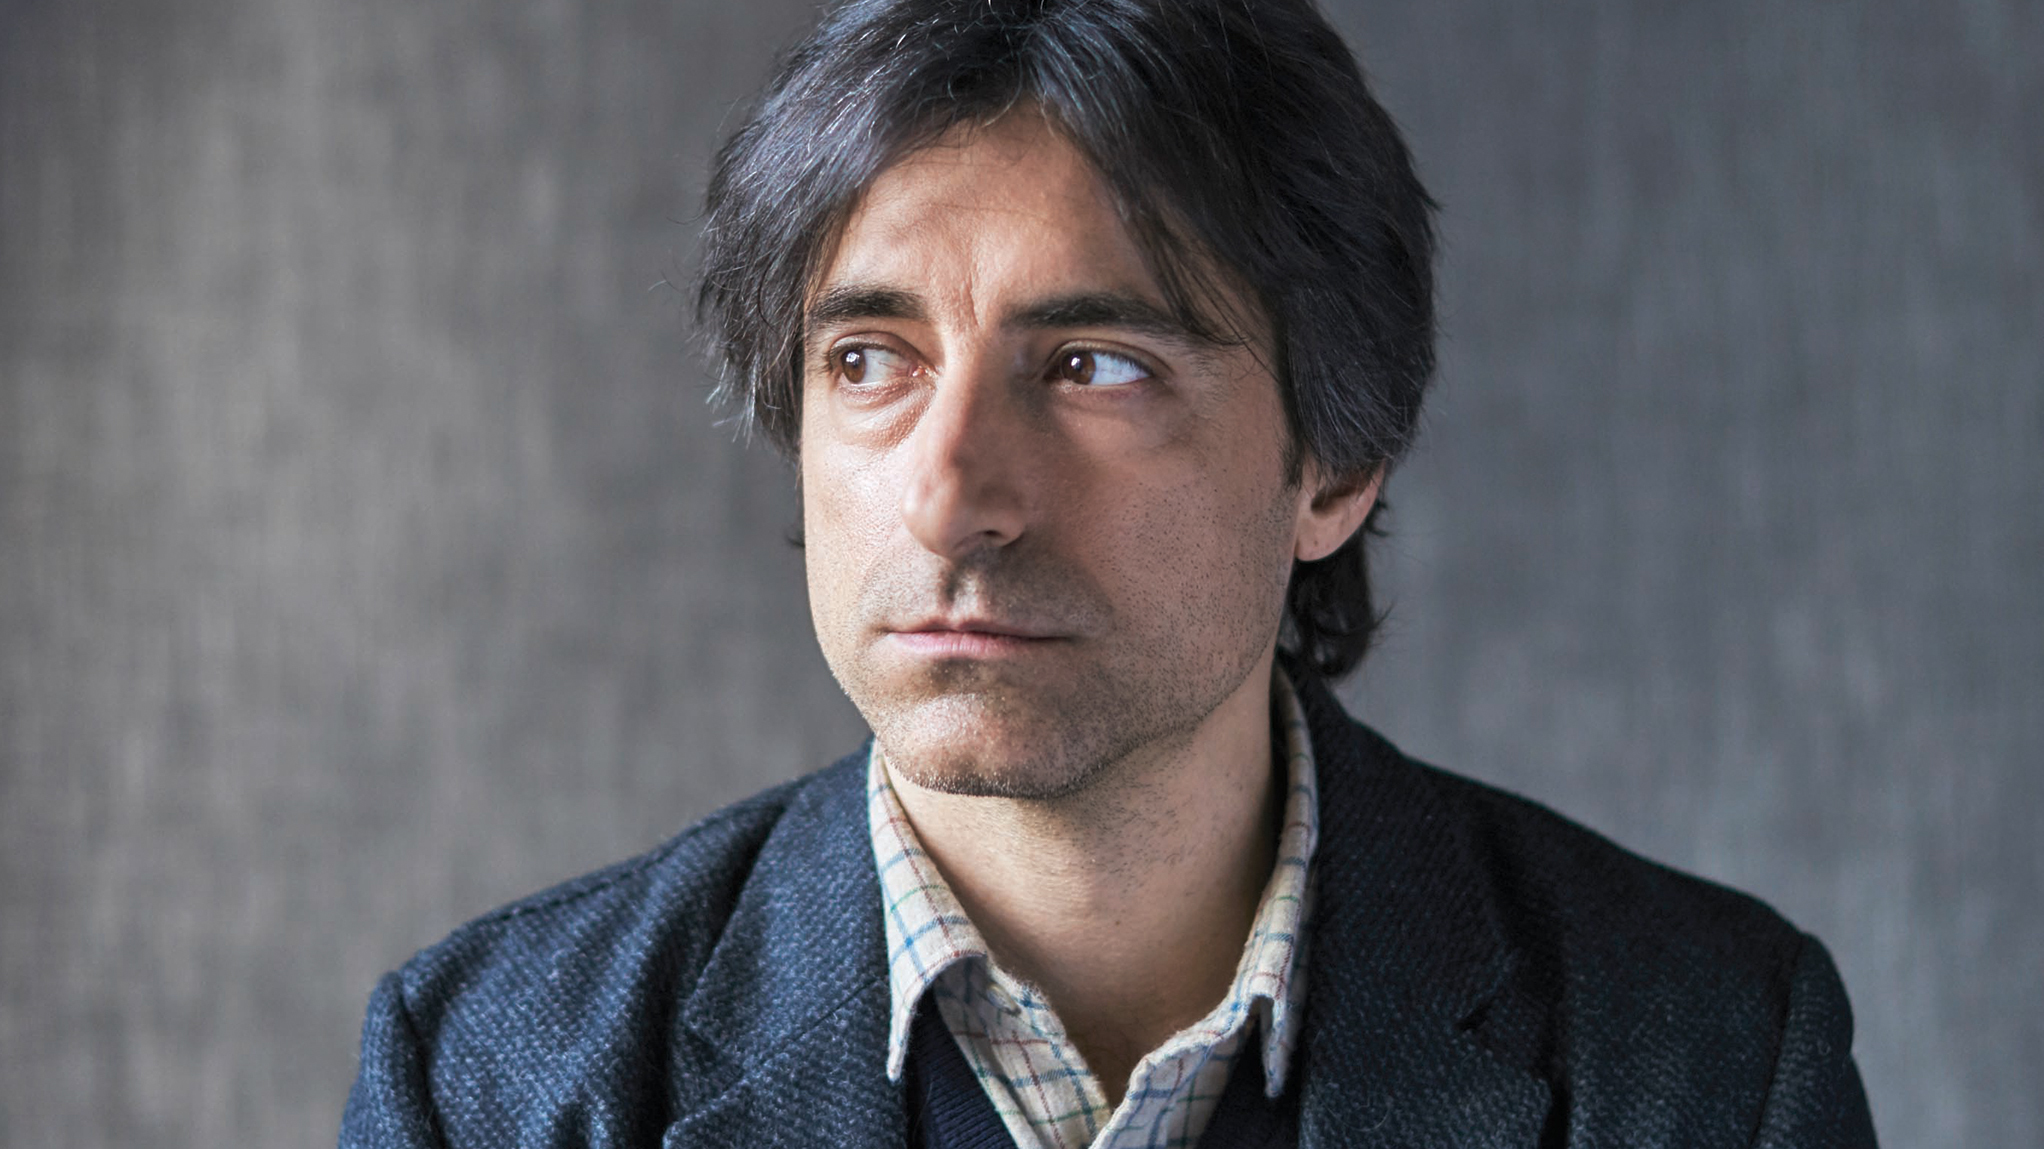 Noah Baumbach on millennials, his new comedy and New York movies